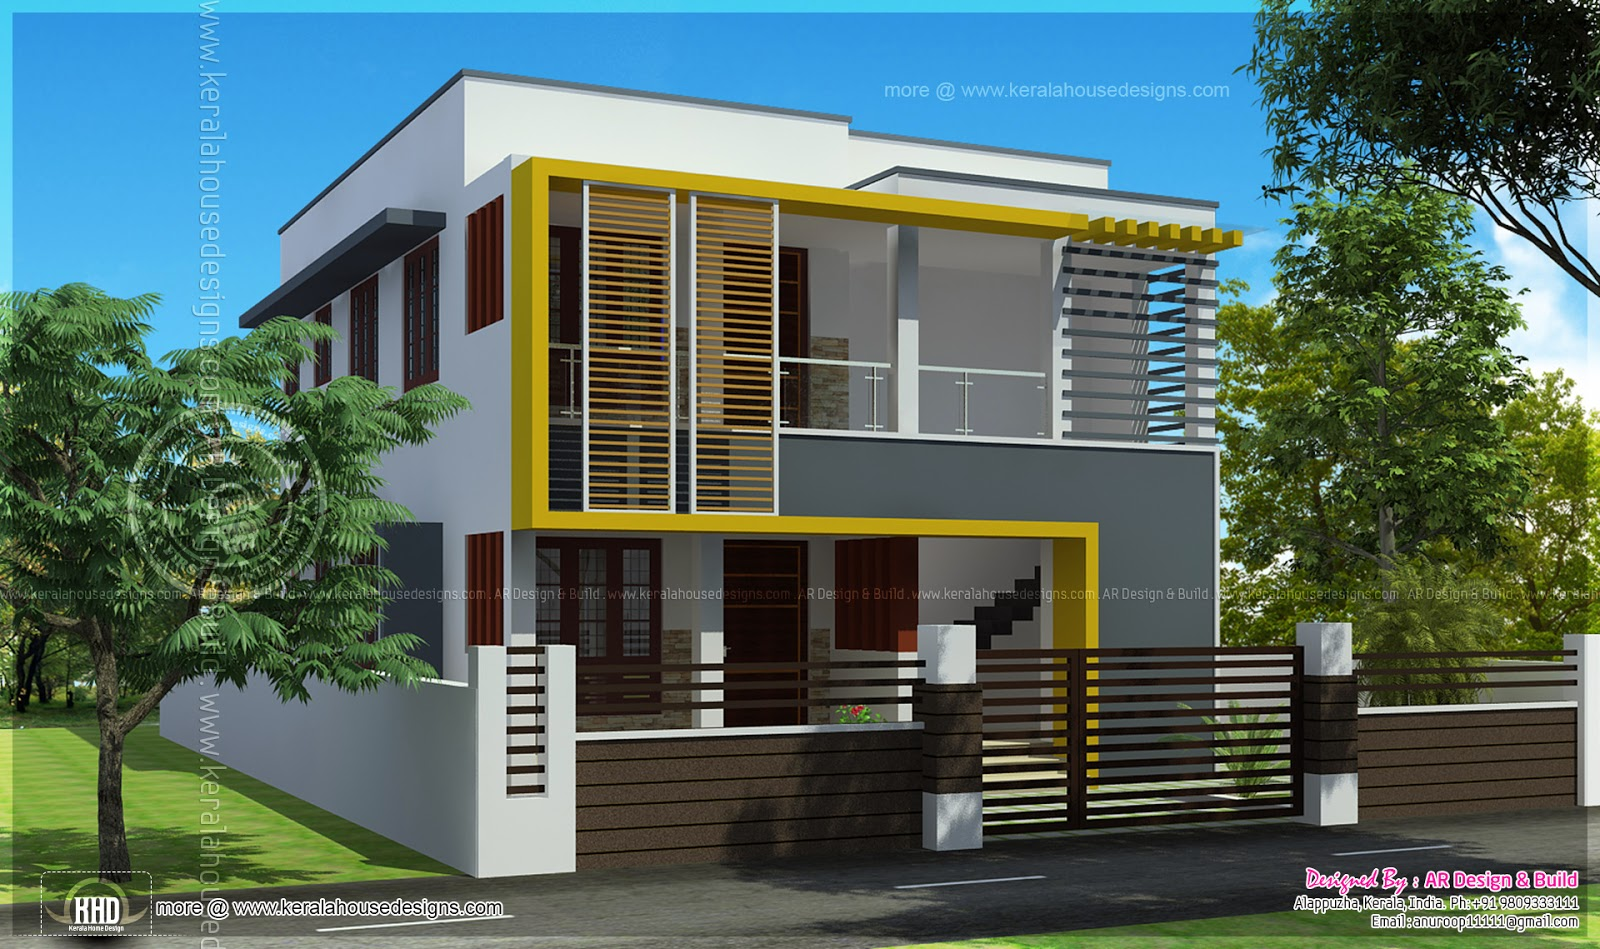 Duplex house elevation 1000 sq feet each kerala home for 1500 sq ft duplex house plans